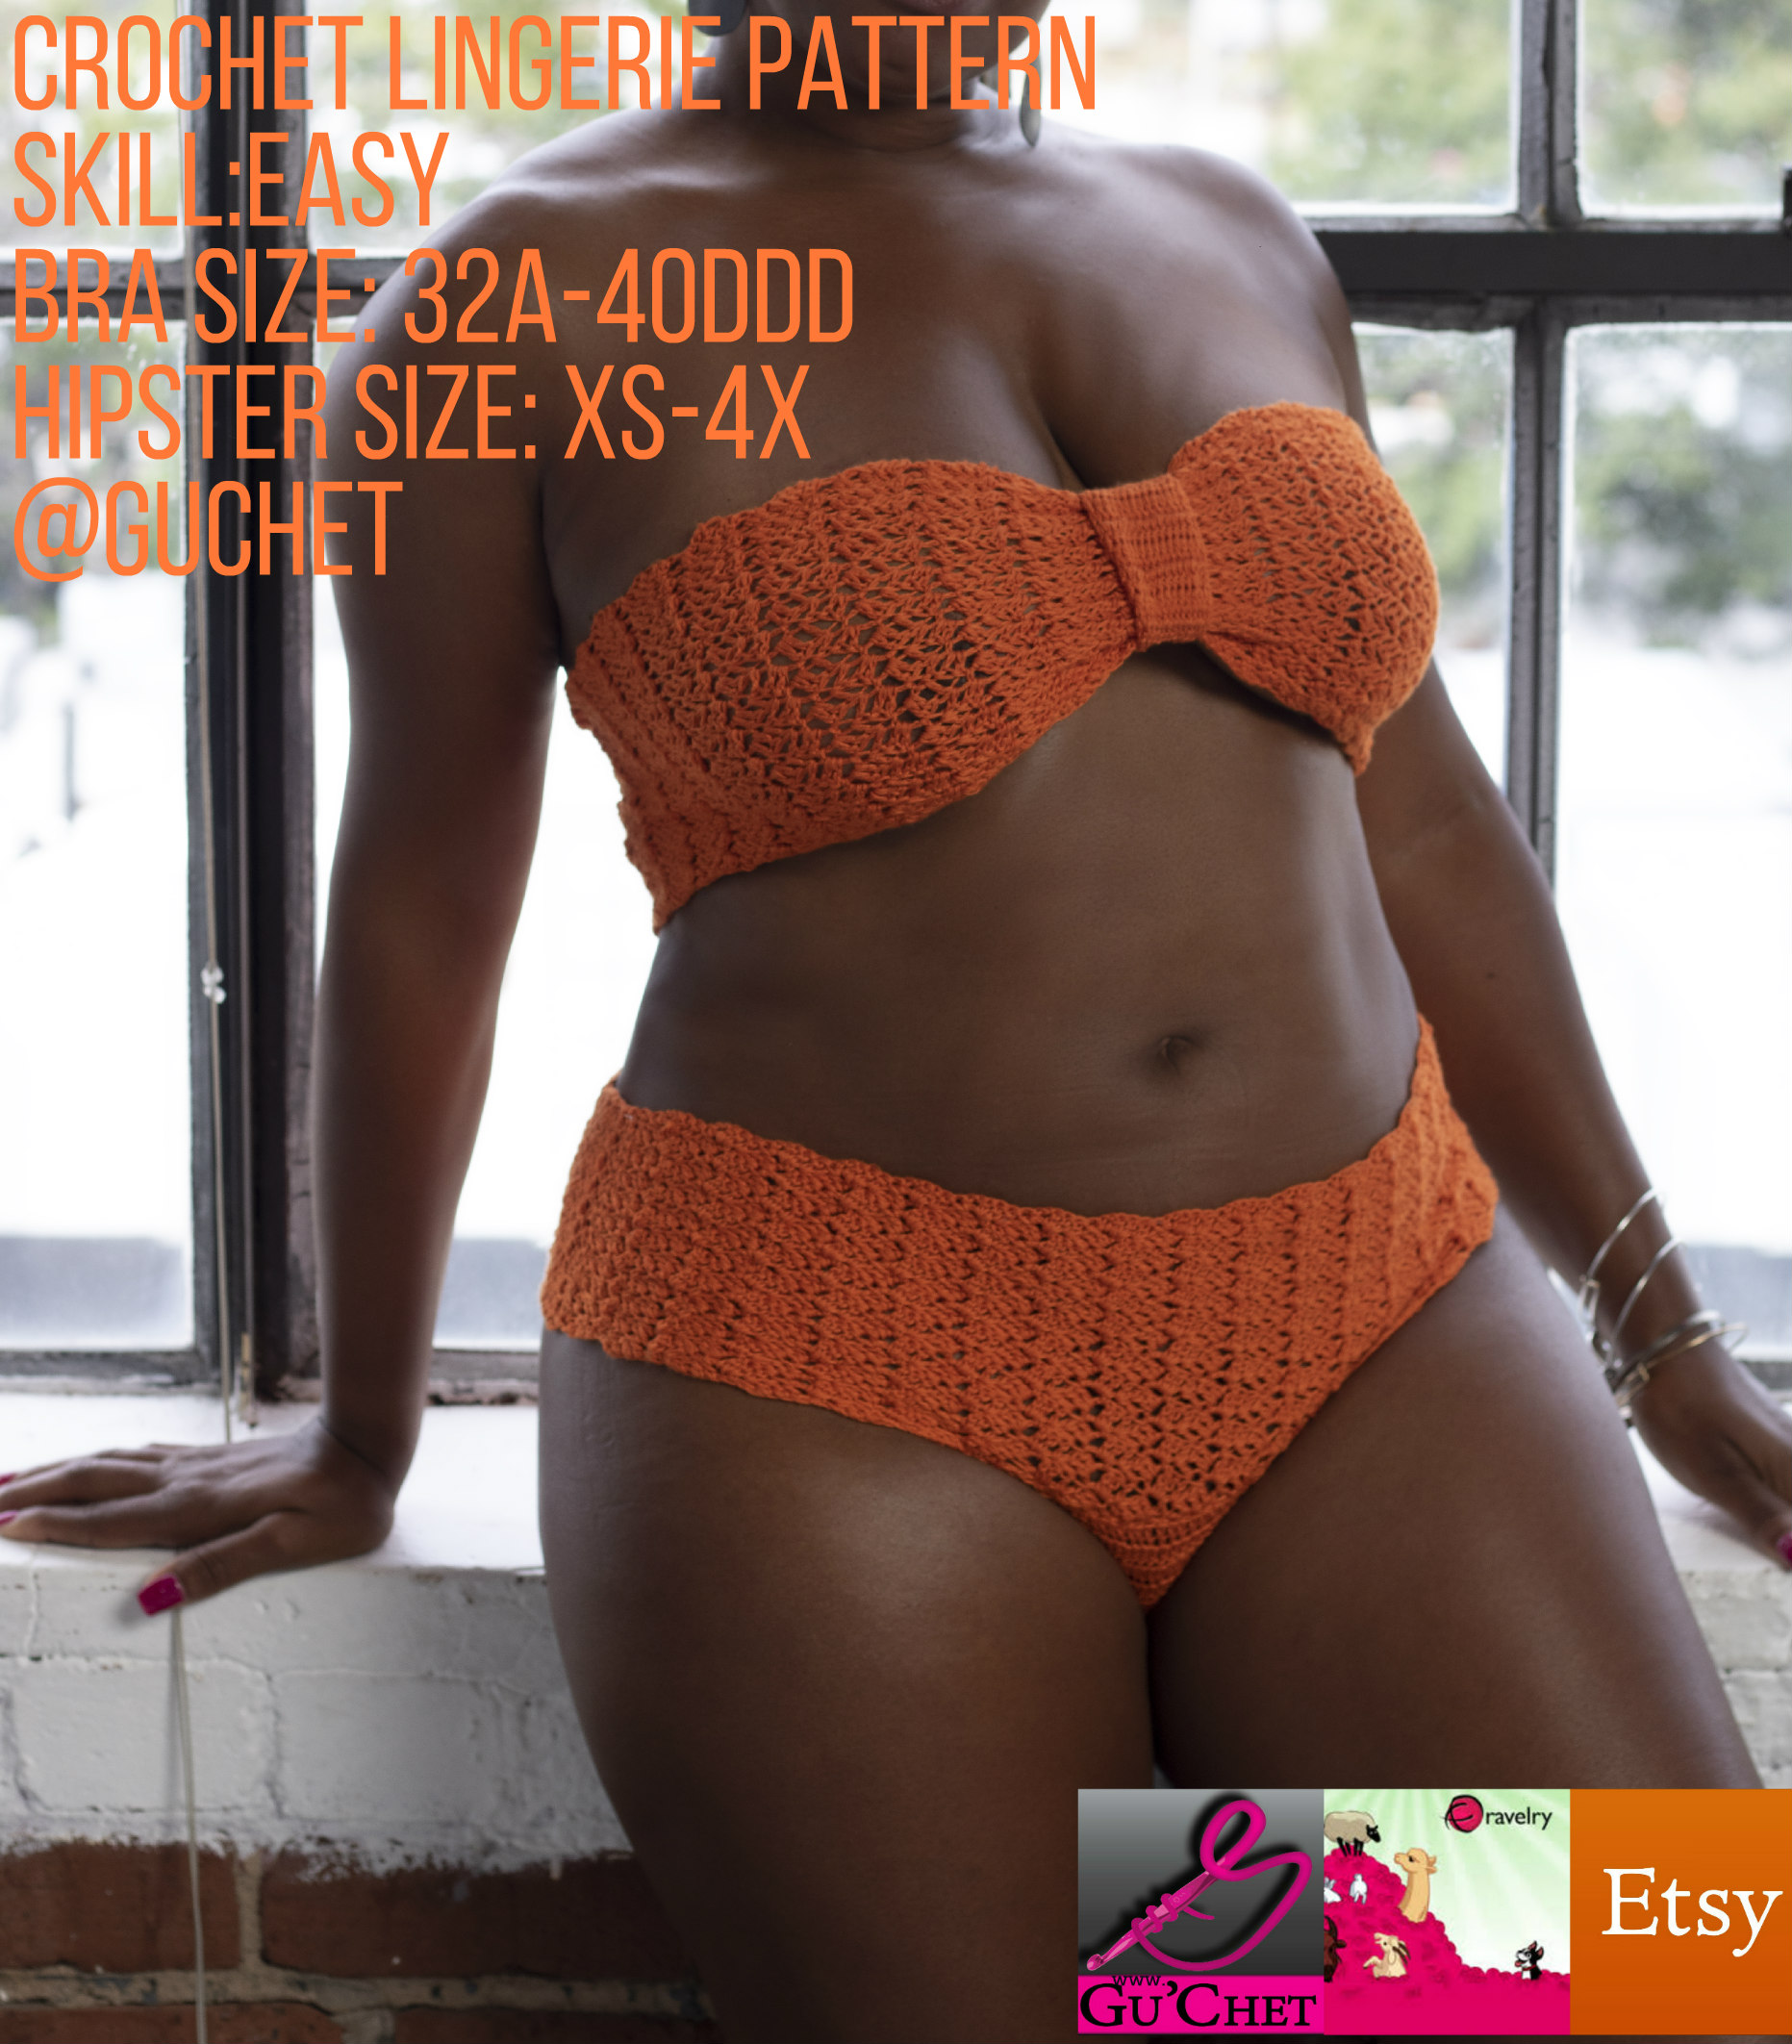 Crochet Lingerie Pattern by GuChet_Bandeau & Hipseter Set Set with tags 2.jpg